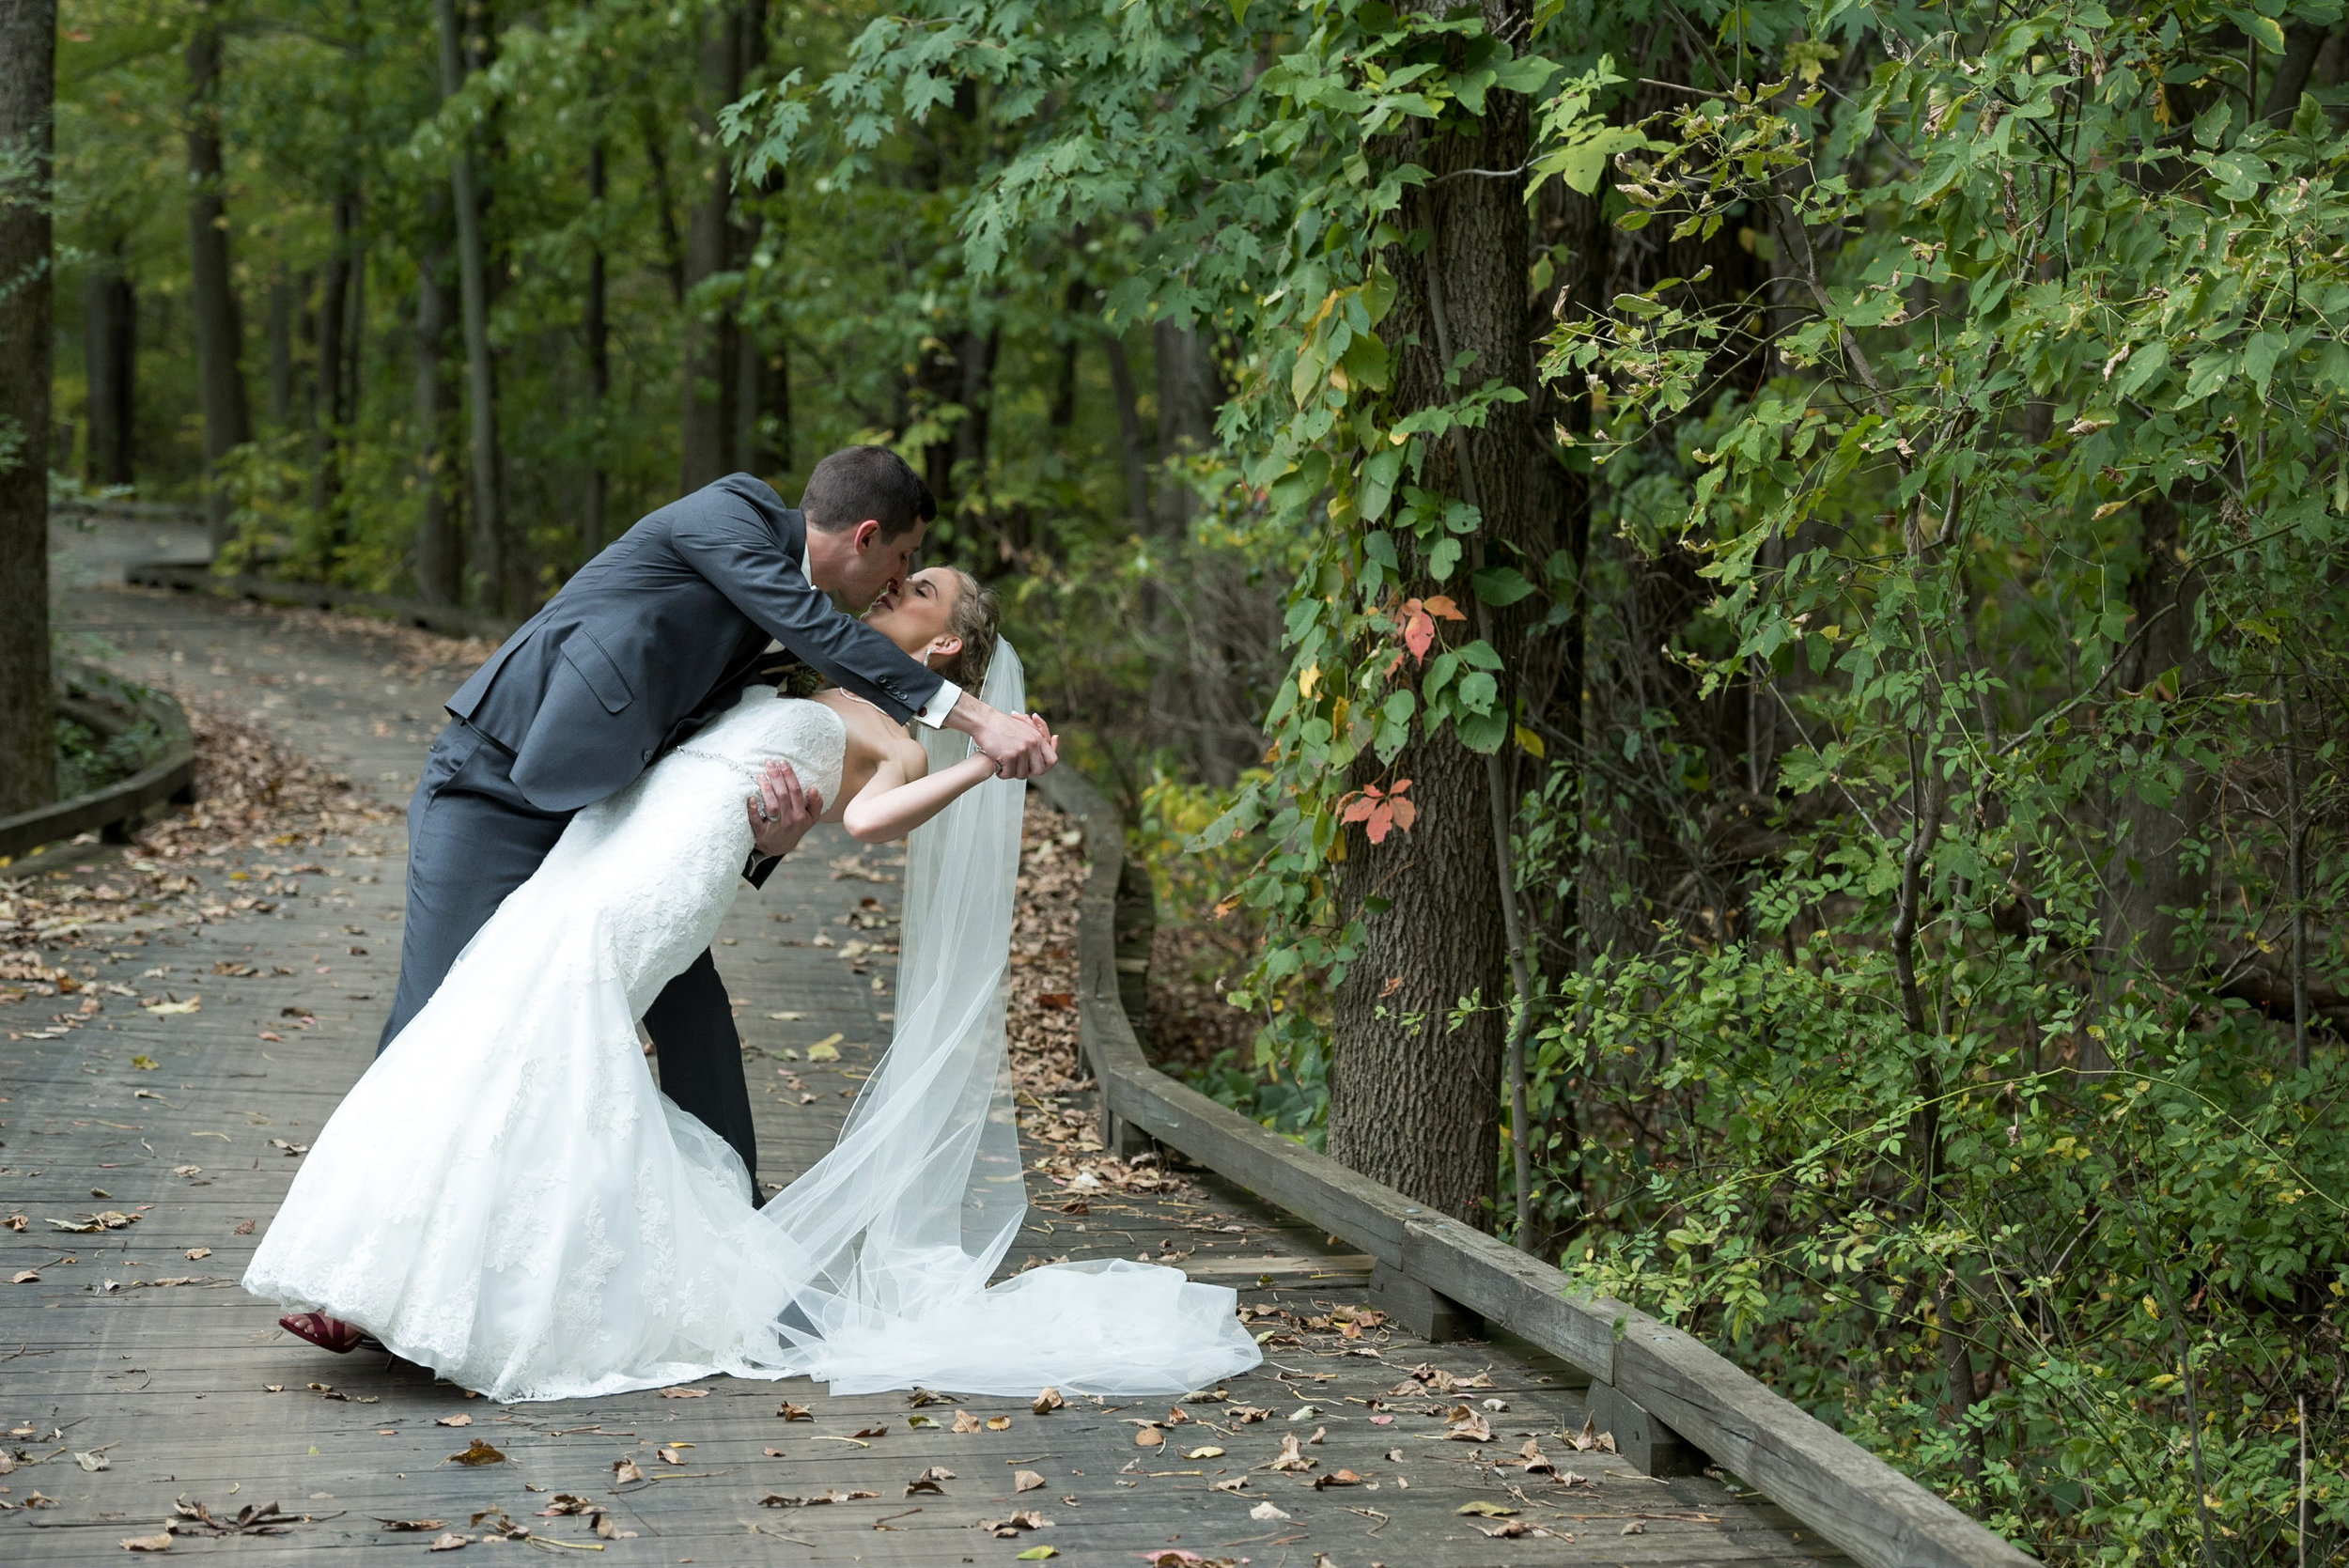 MelissaCullenWEDDING-706.jpg